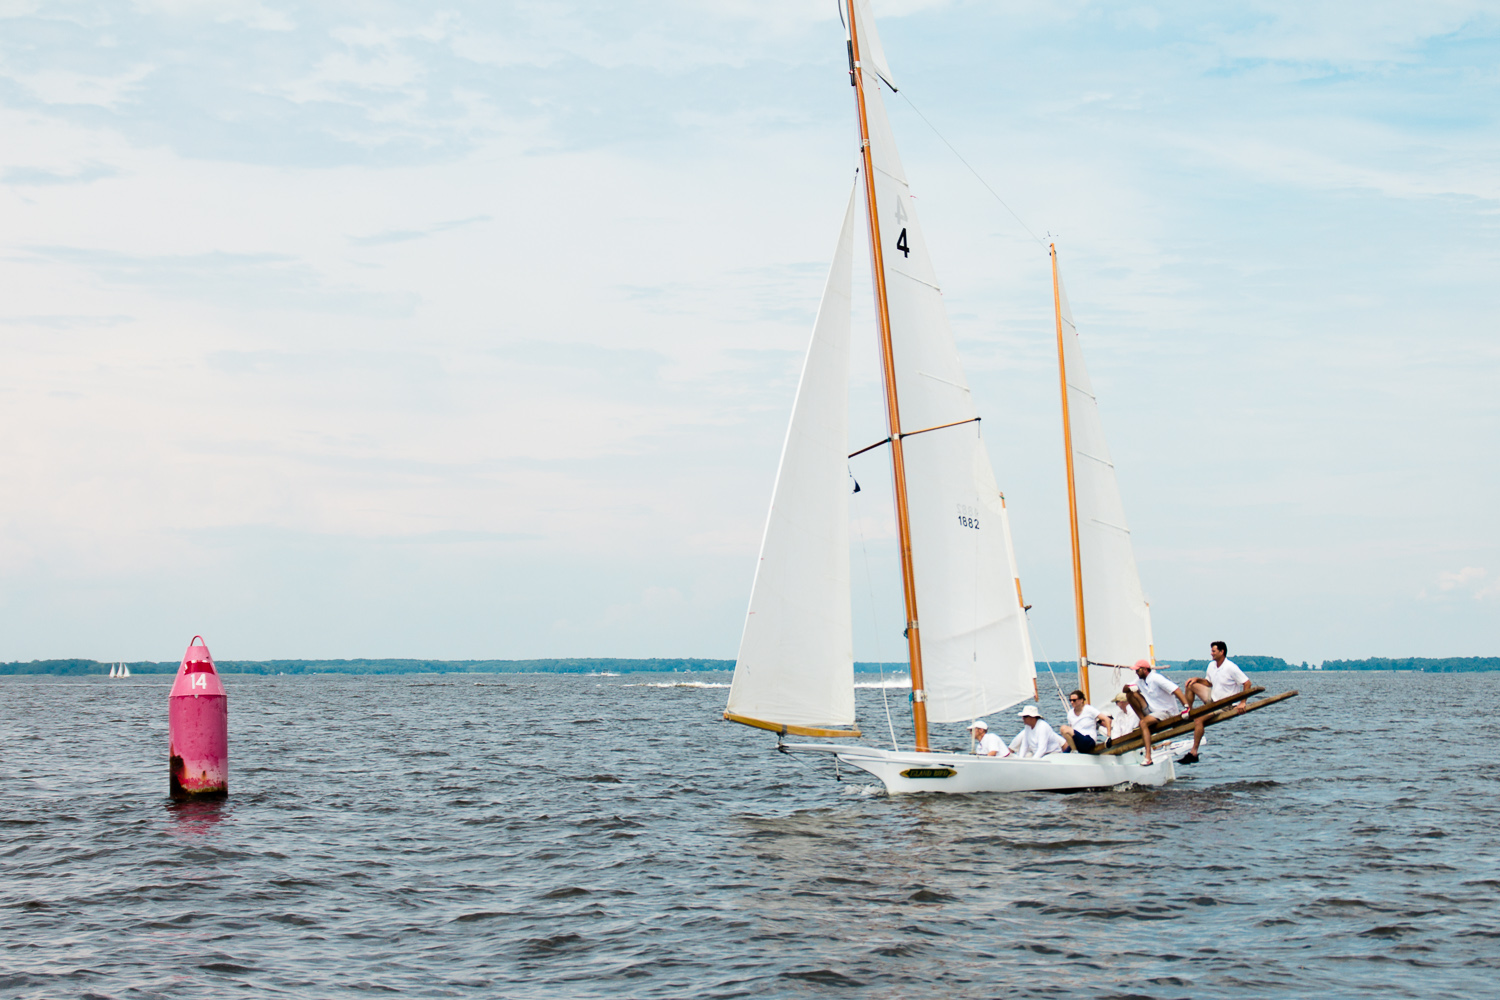 Log-Canoe-Race-at-Rock-Hall-Yacht-Club-July-2016-ss-27.jpg